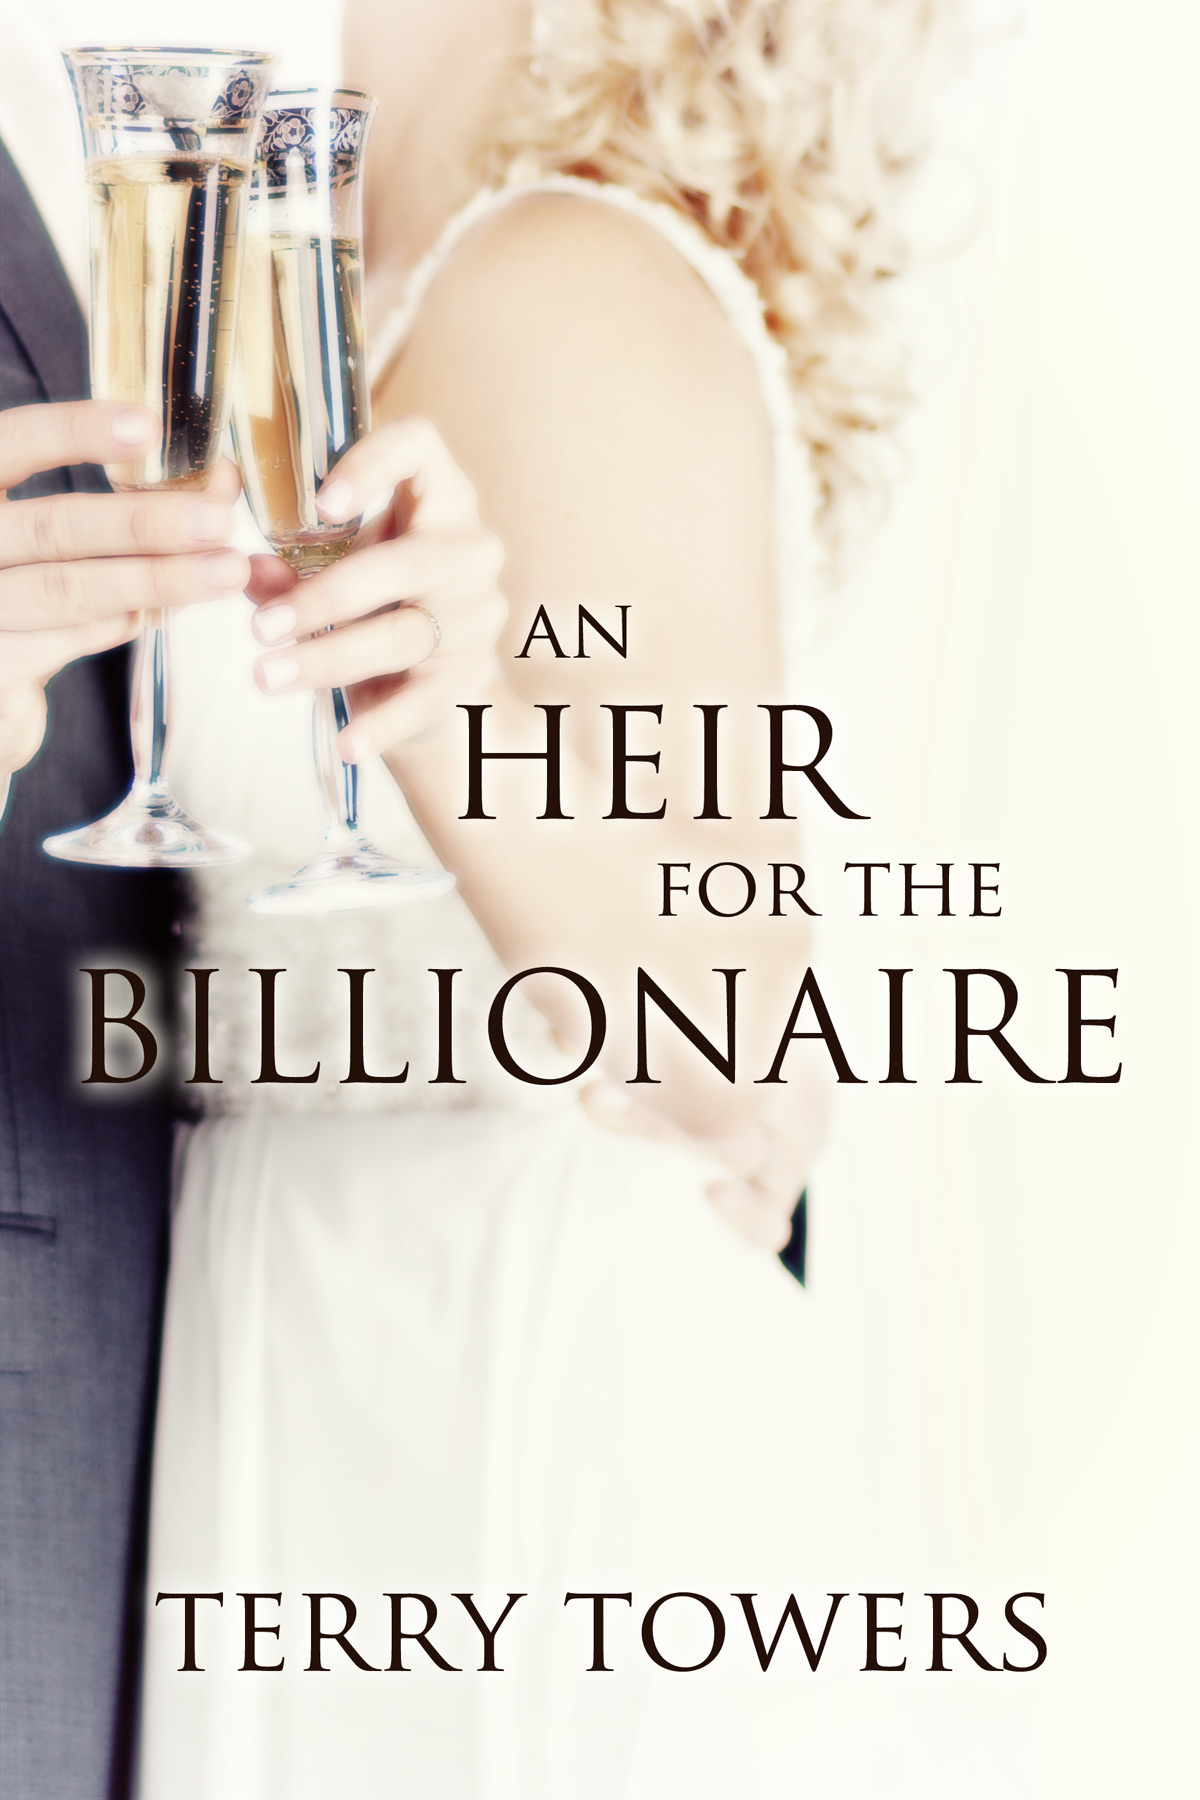 Terry Towers - An Heir For The Billionaire (Billionaire Romance)